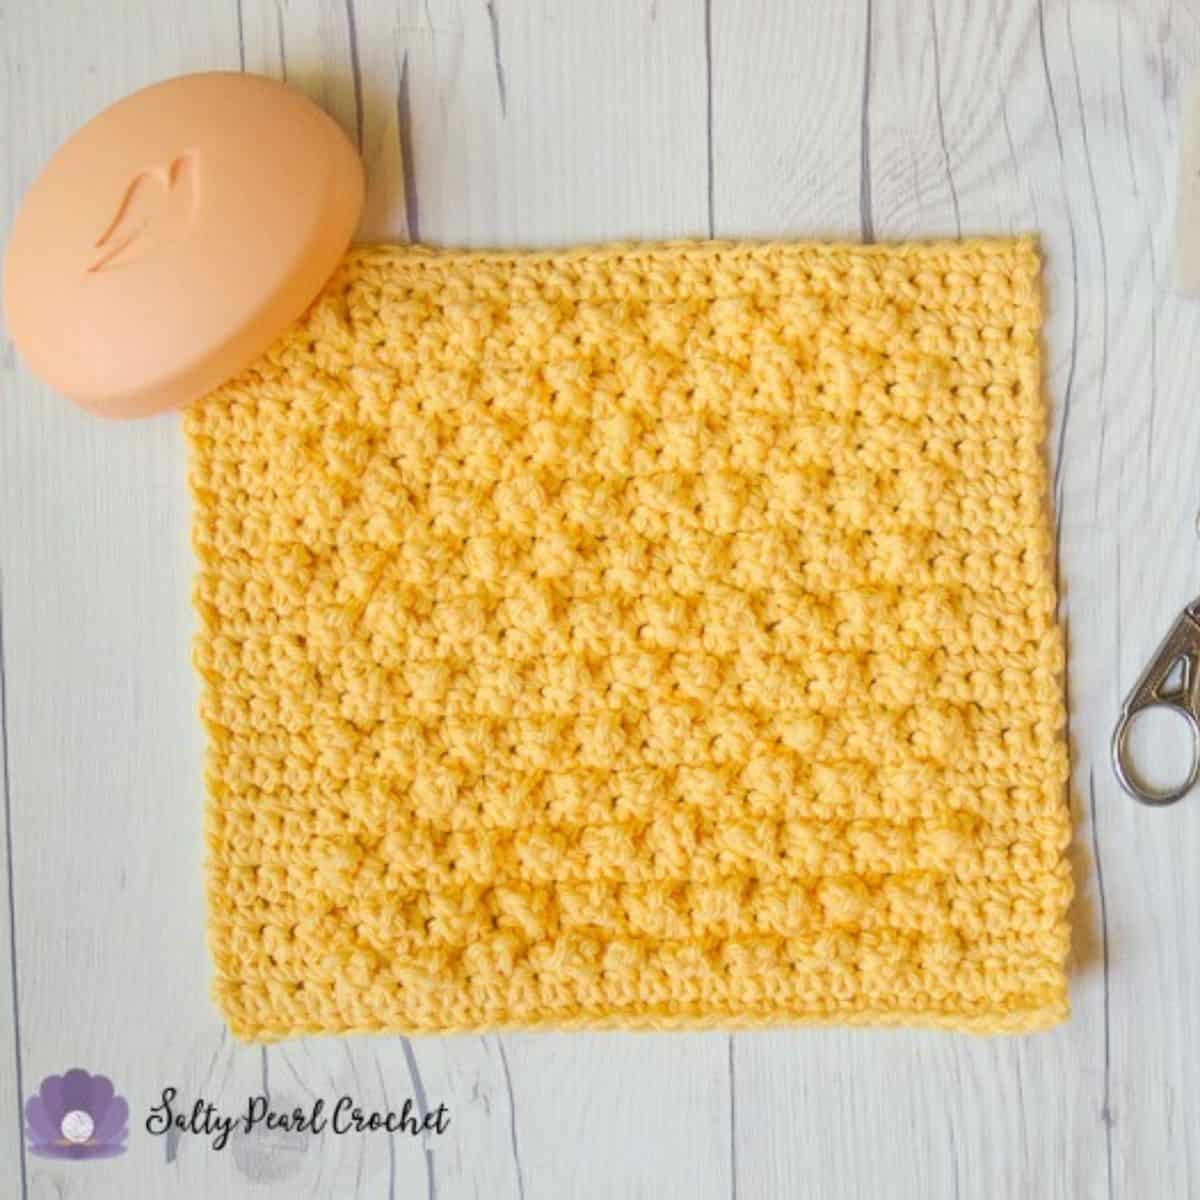 yellow crochet dishcloth laying flat with a bar of soap on top